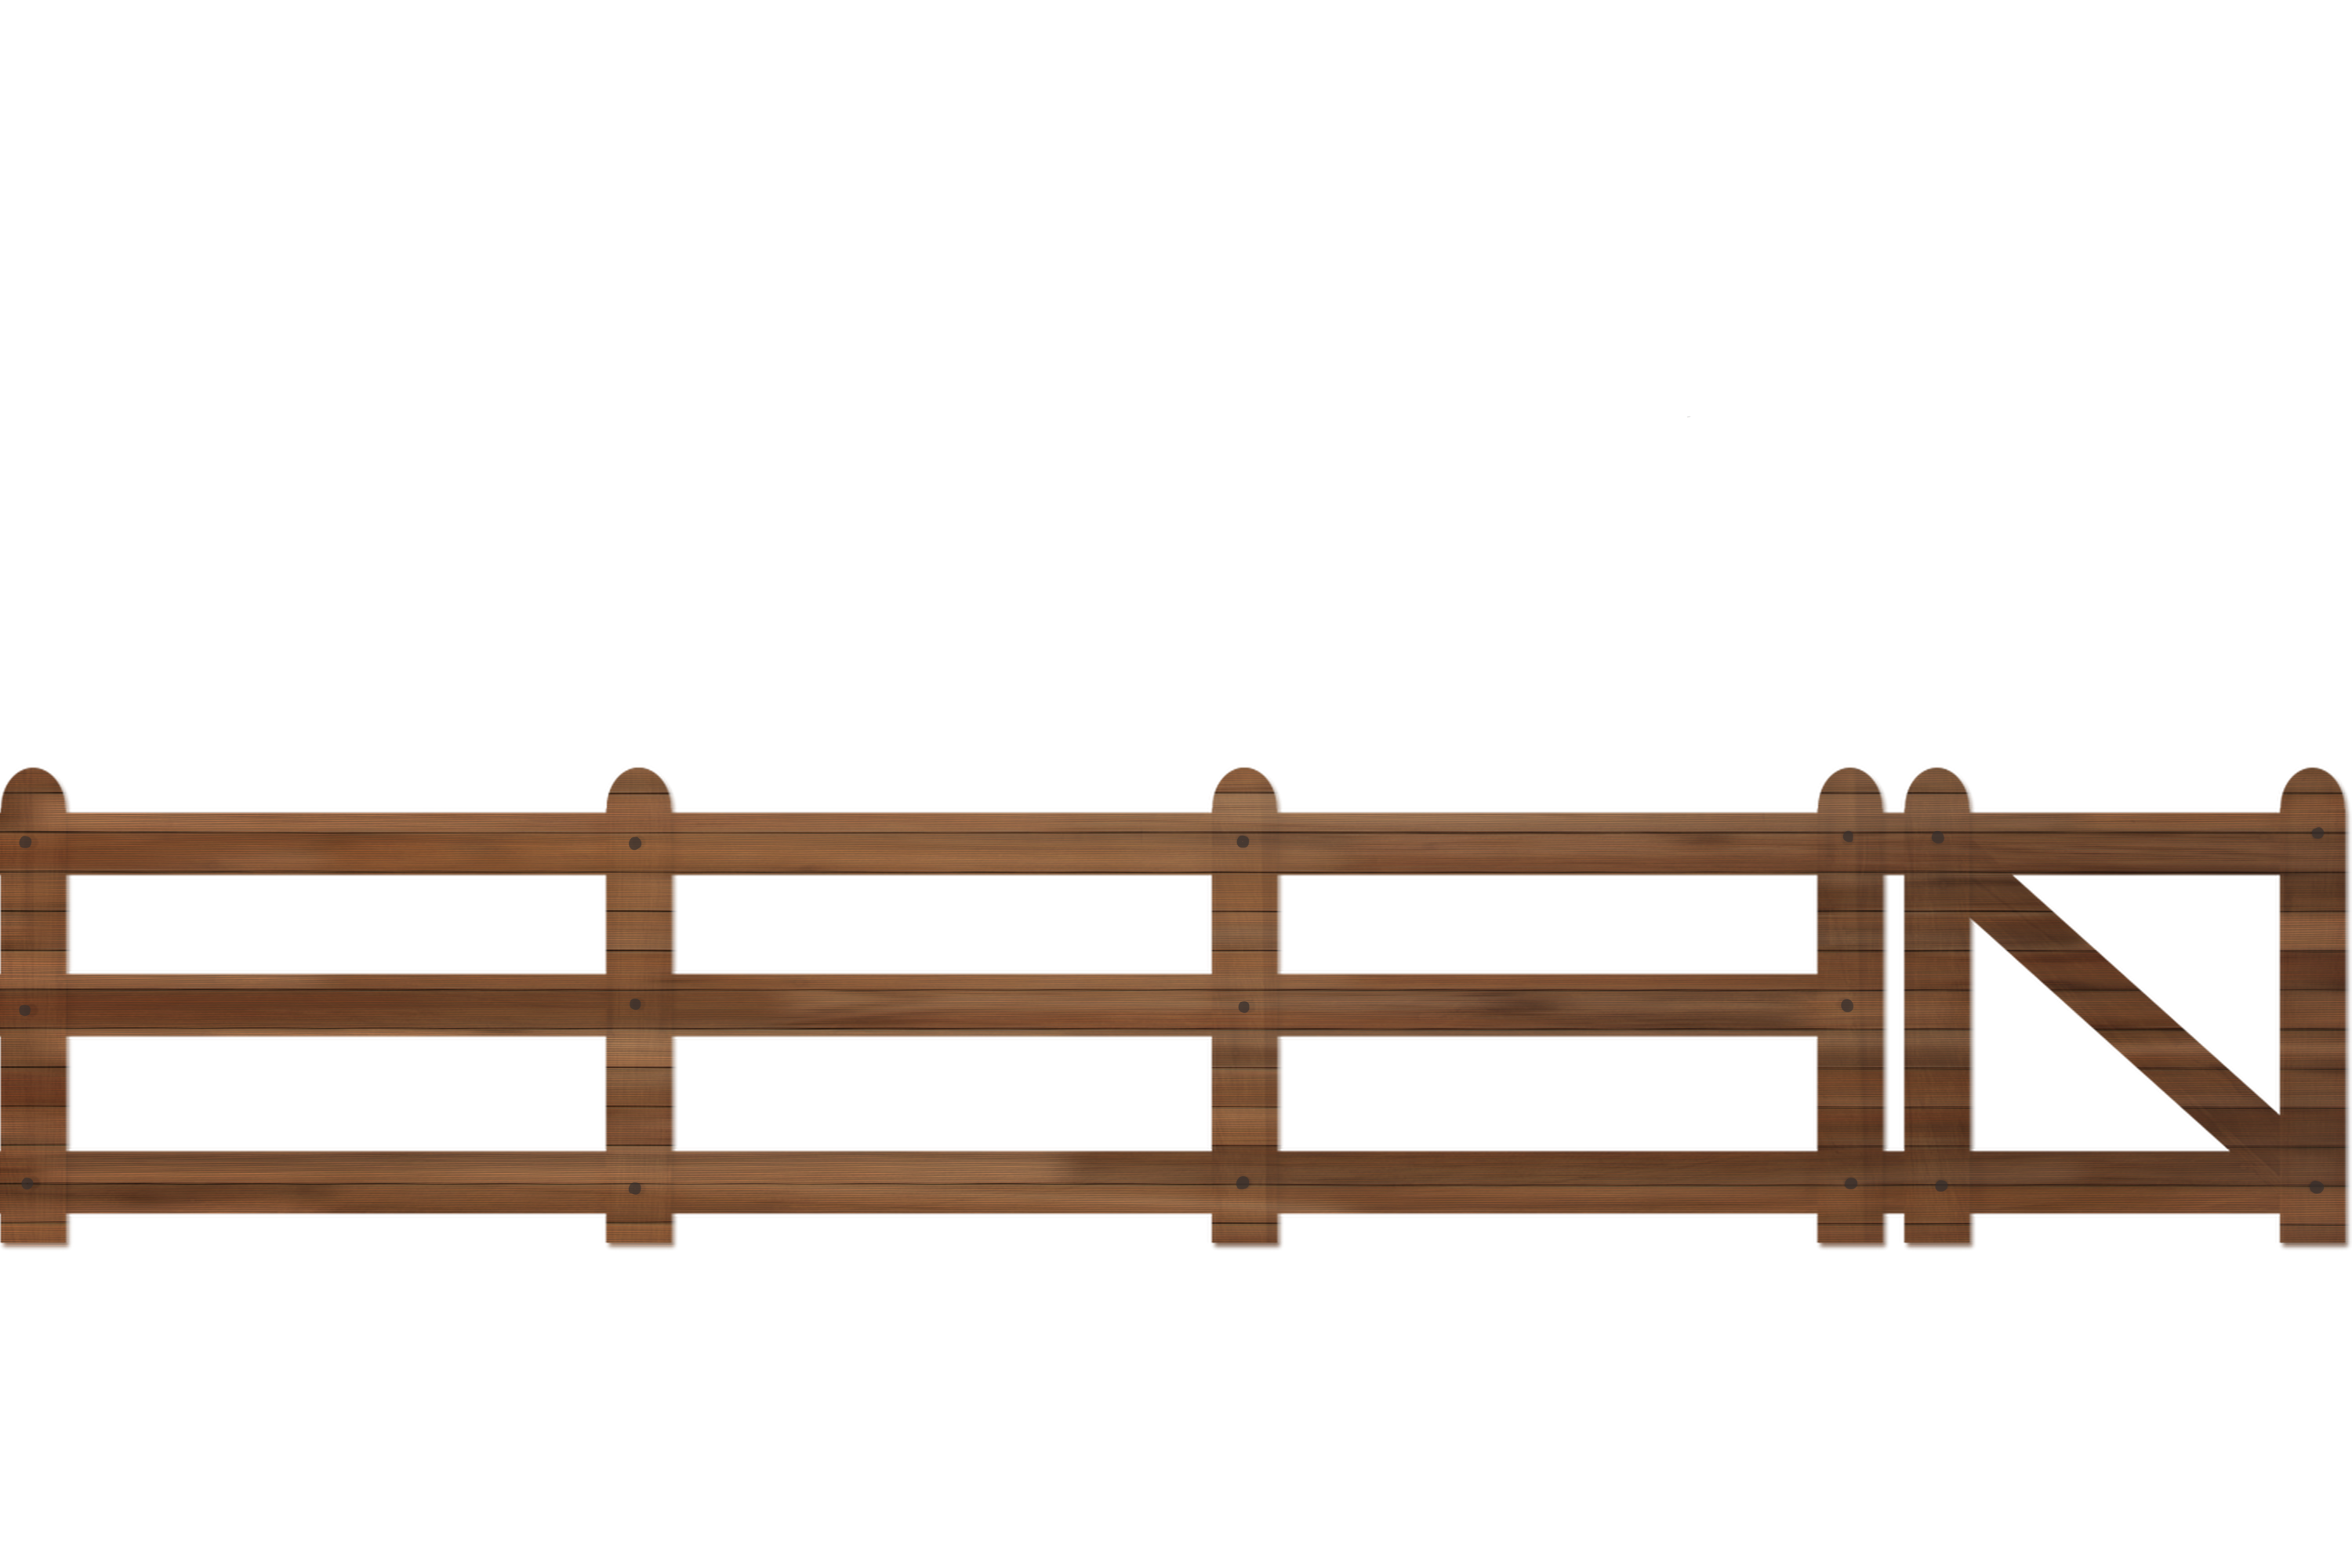 png fence for harpg art starsnip deviantart #21521